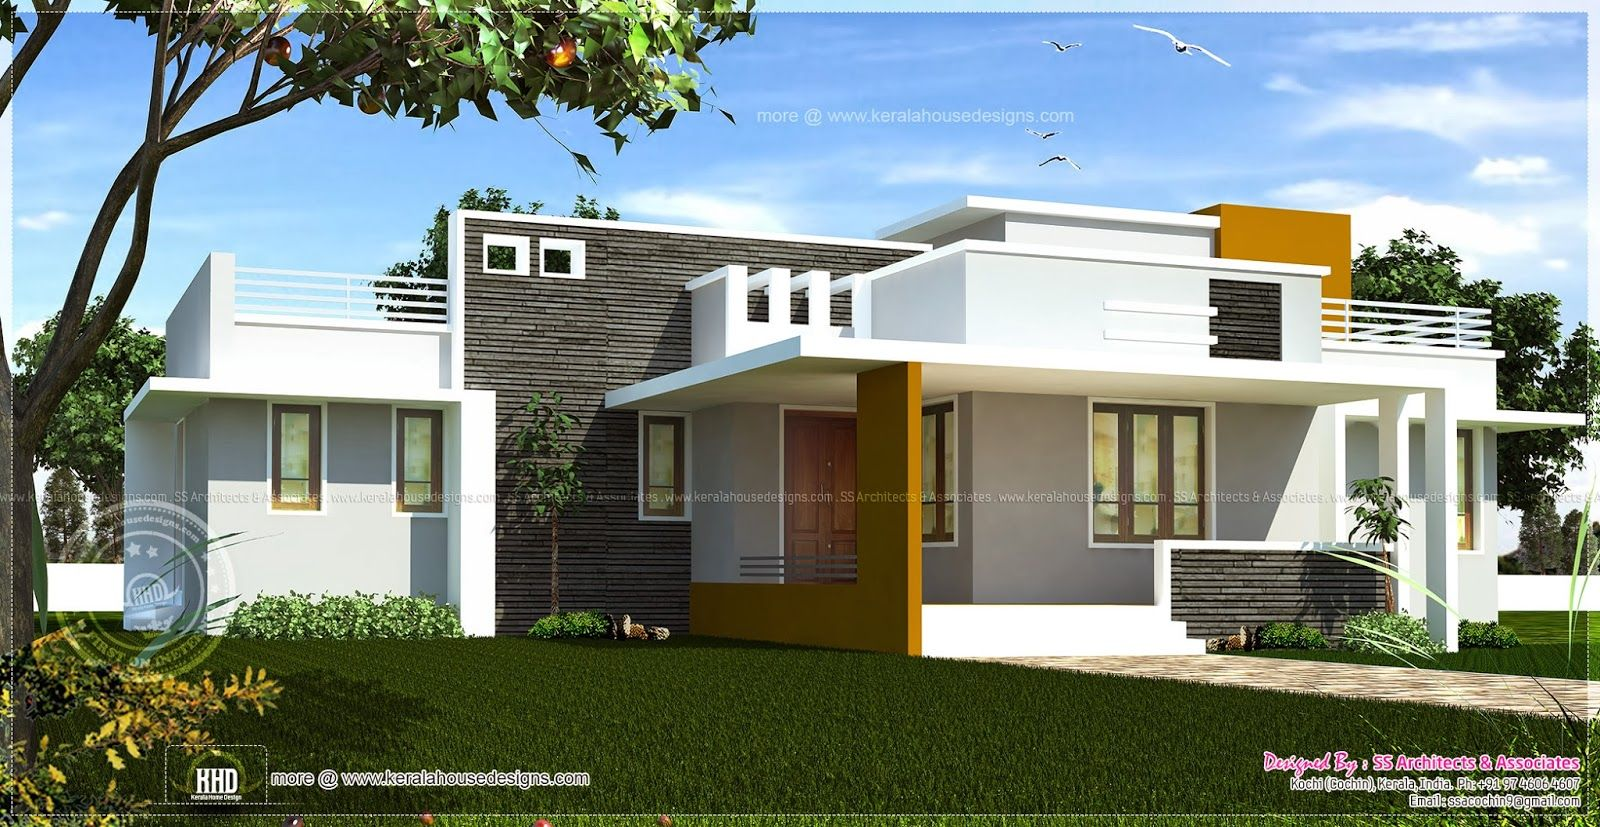 Excellent single home designs single floor contemporary for Housing plans kerala